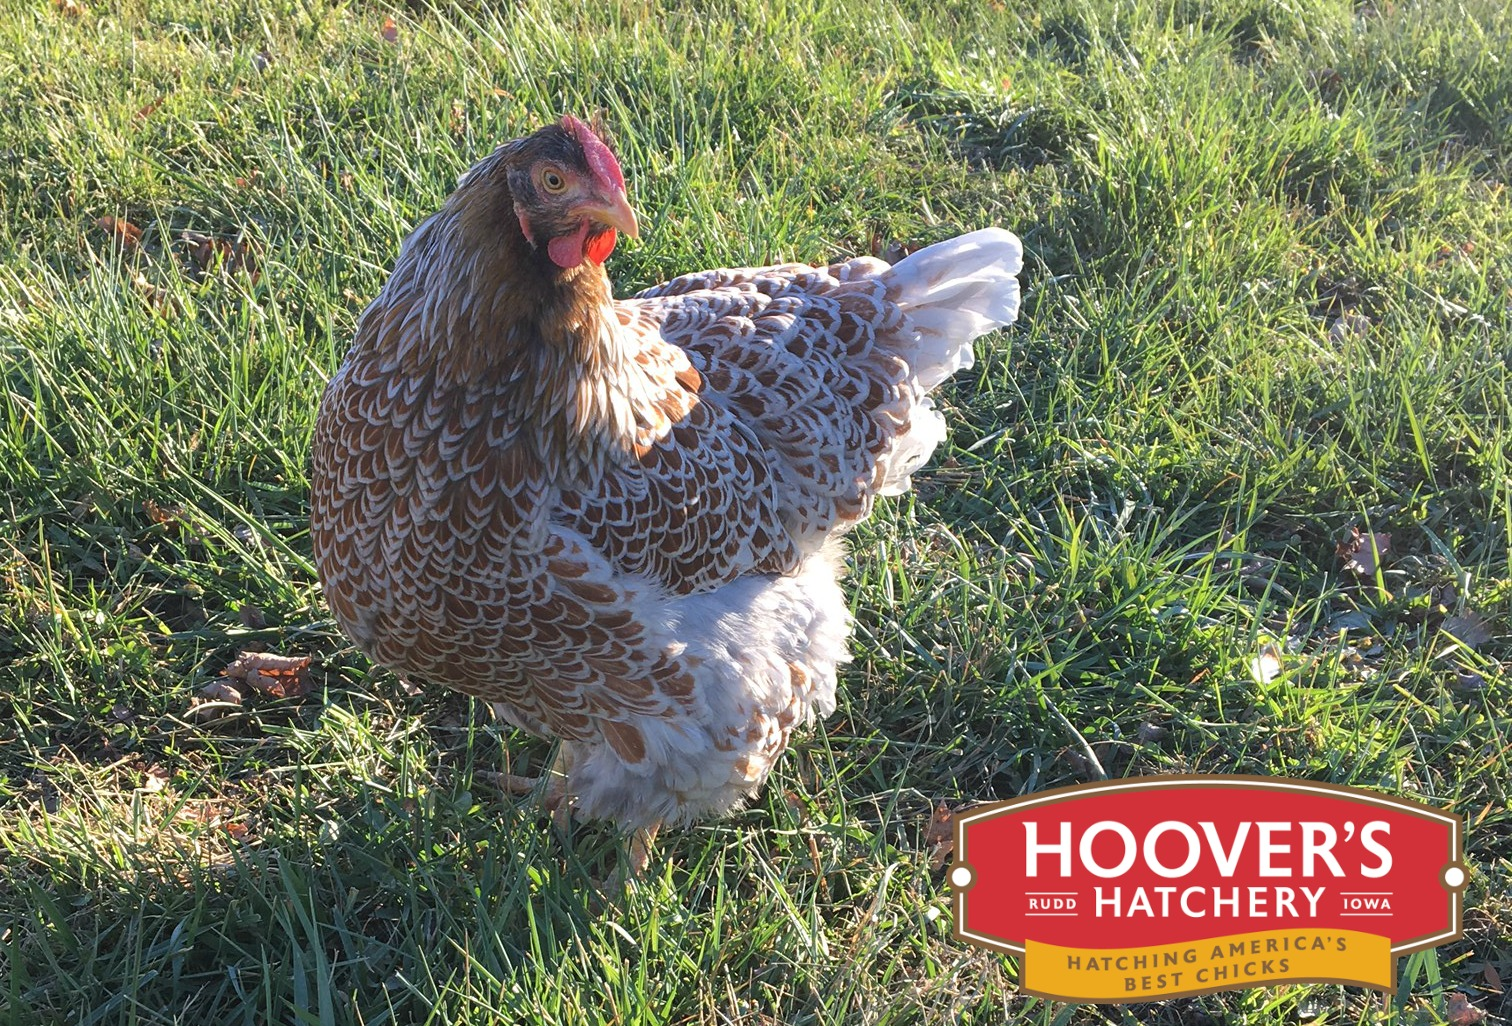 Blue Laced Red Wyandotte - These lacy girls aren't all show with their elegantly patterned feathers, they are also great egg layers. Wyandottes are one of the most strikingly beautiful chickens to grace a backyard flock. Developed in New York, they are quiet, easy to manage and one of the most winter hardy of all breeds. The Blue Laced Red Wyandotte is sold as straight run only. APPROX. 245 MEDIUM EGGS/YEAR | EGG COLOR: CREAM | MATURE WT: MALE 7 LBS. FEMALE 5 LBS.